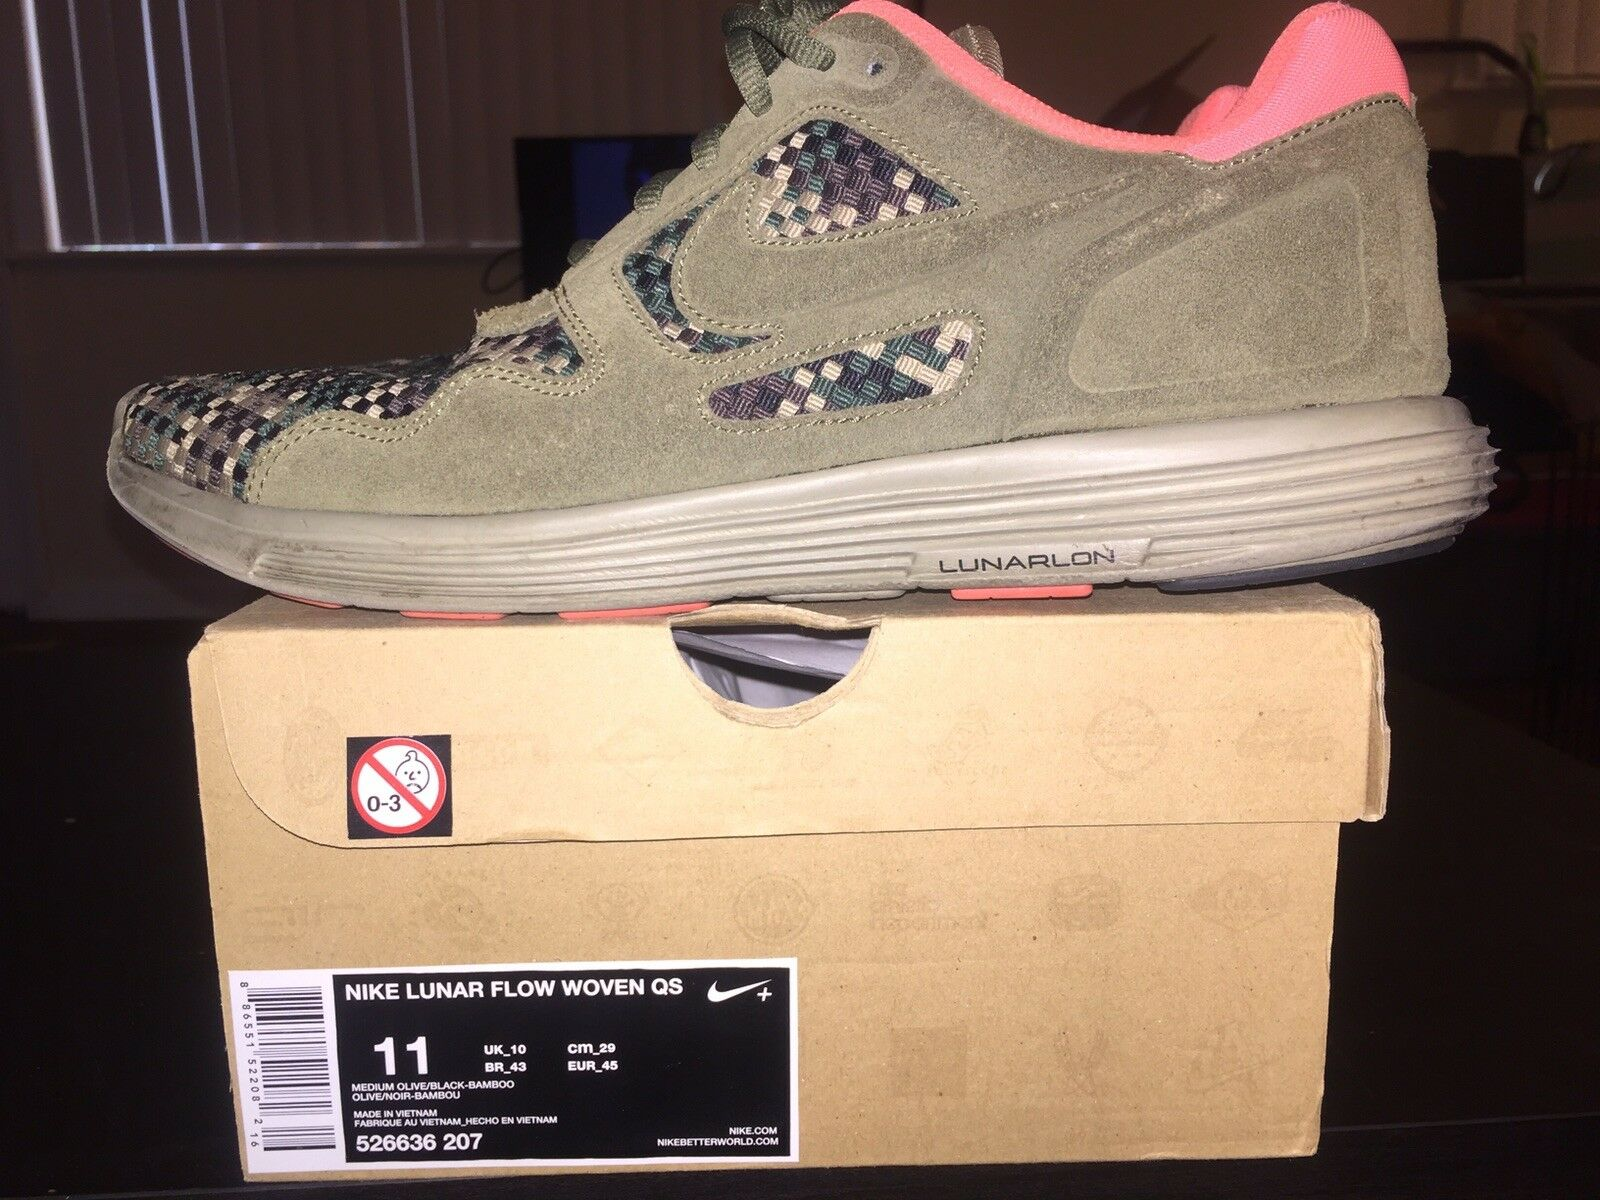 Nike Lunar Flow Woven QS Olive Size 11